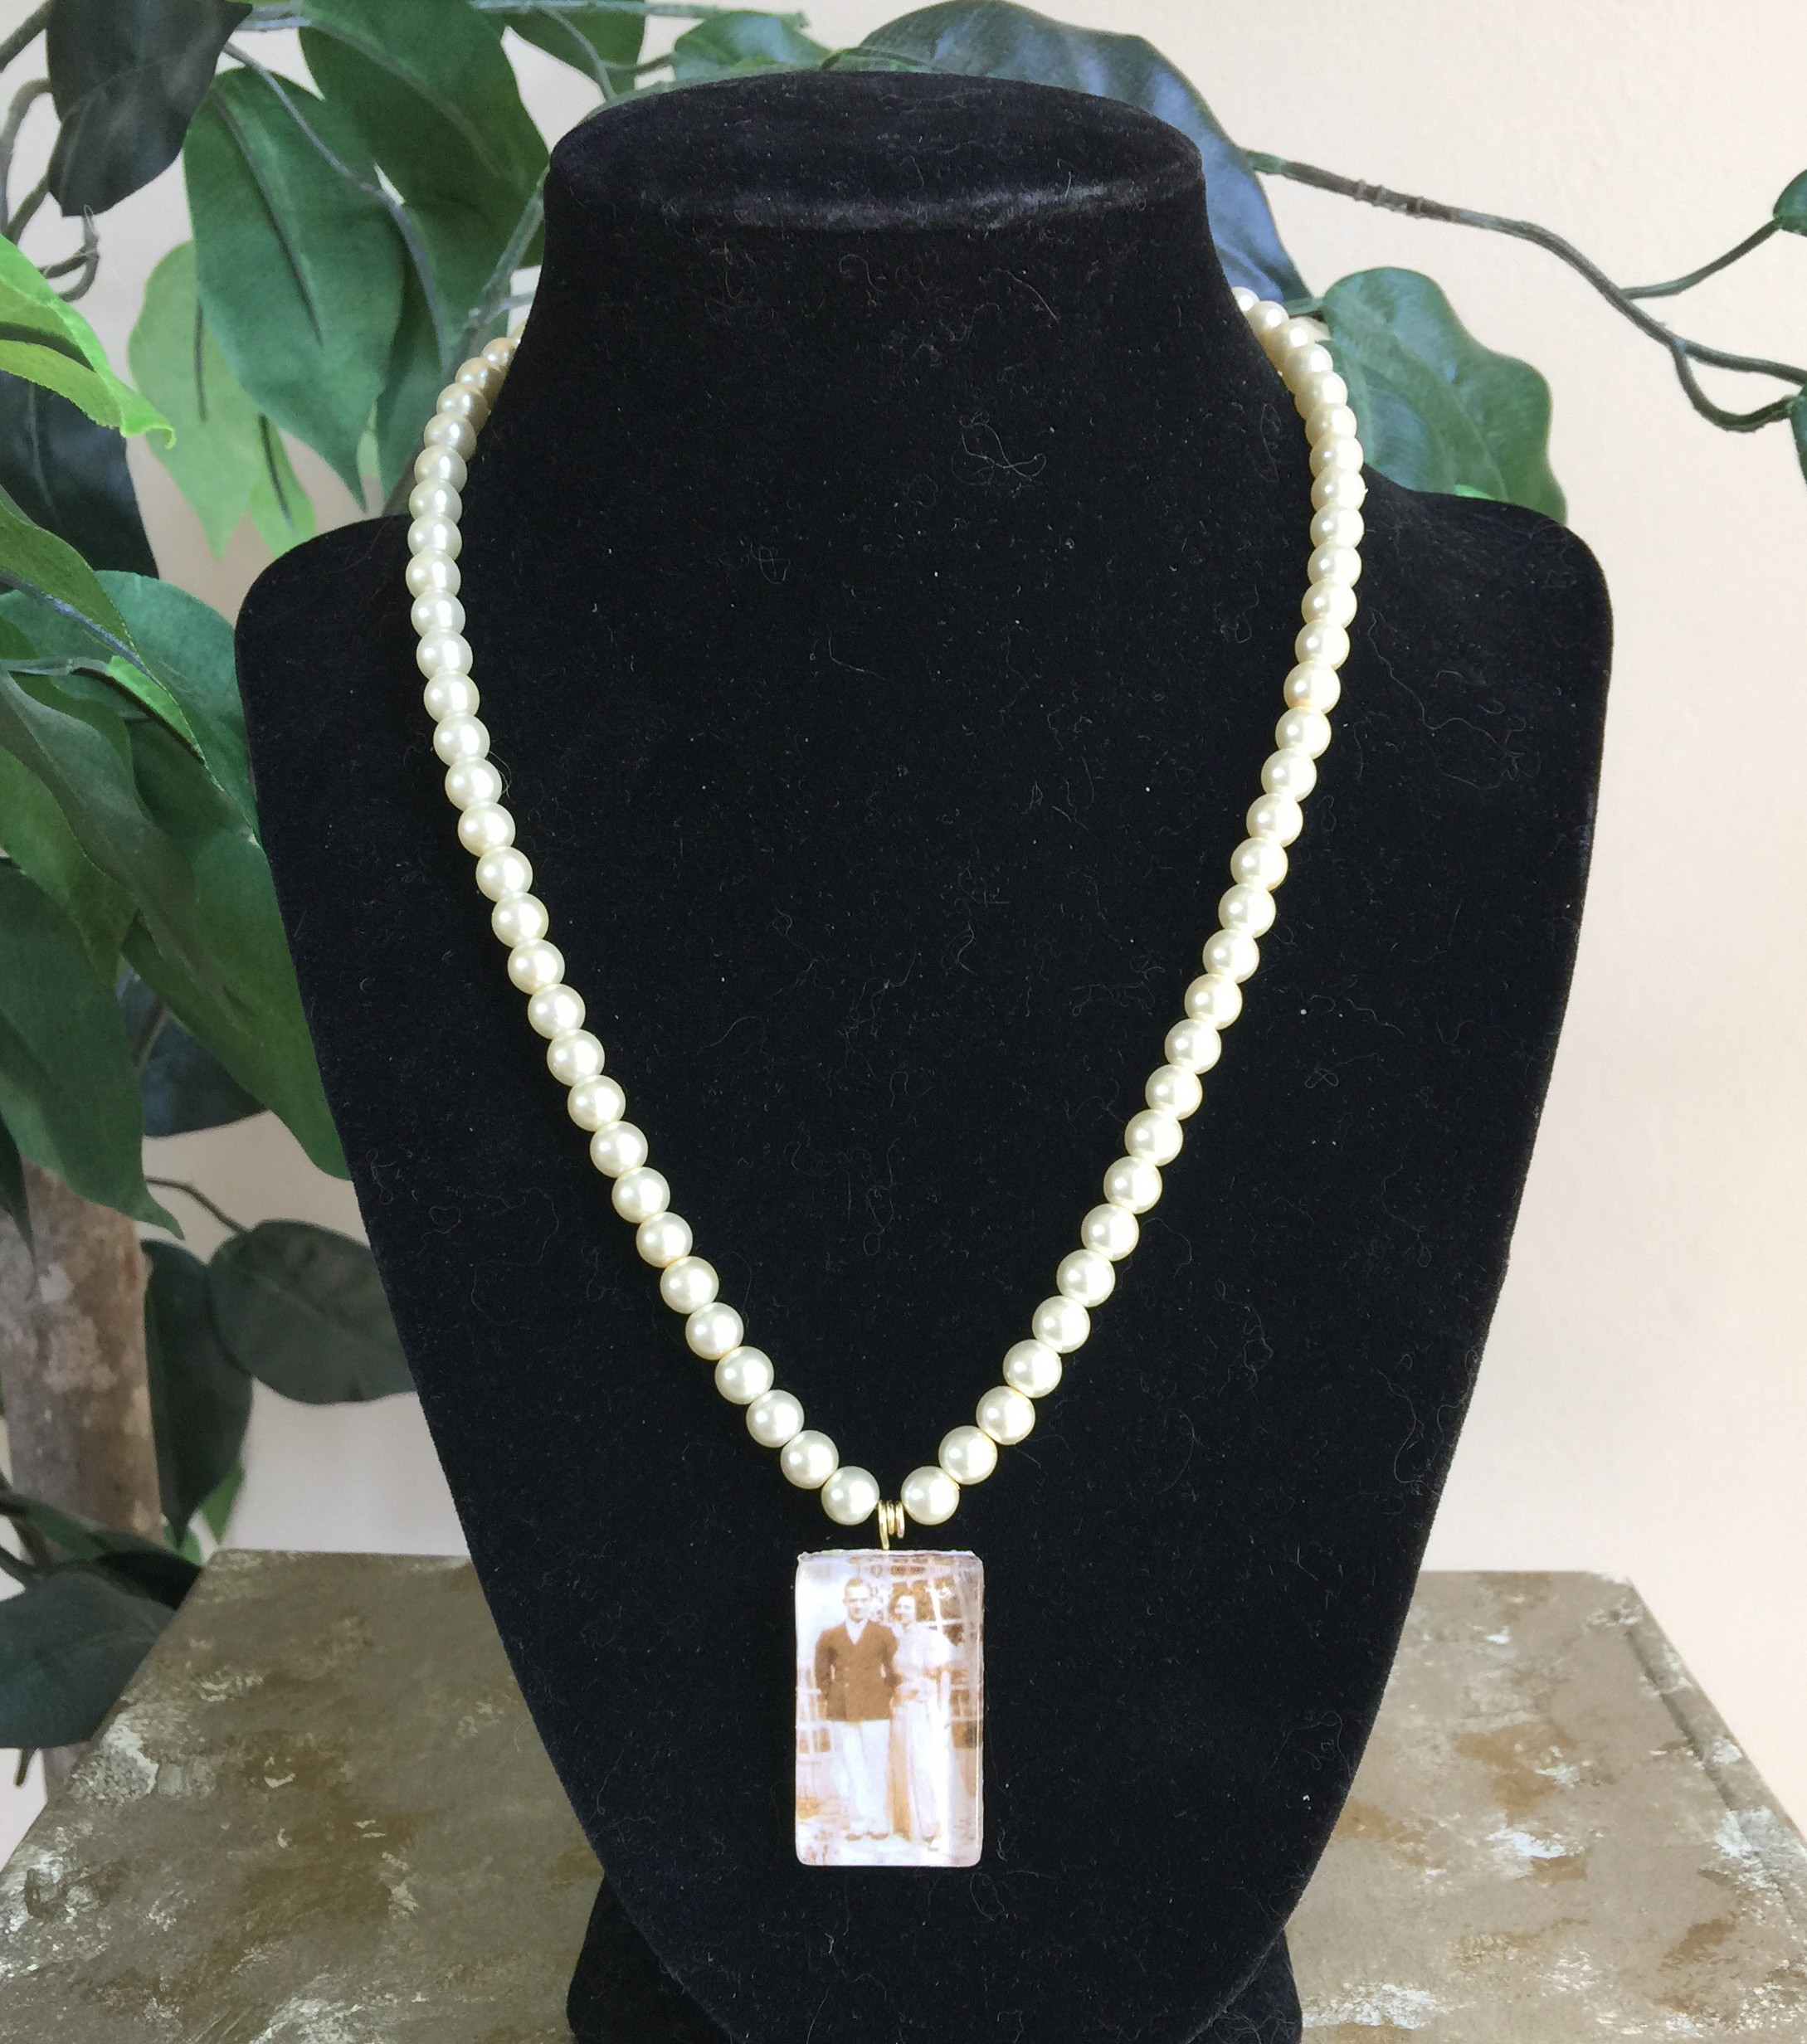 How Do I String Pearls or Beads Without Wire?